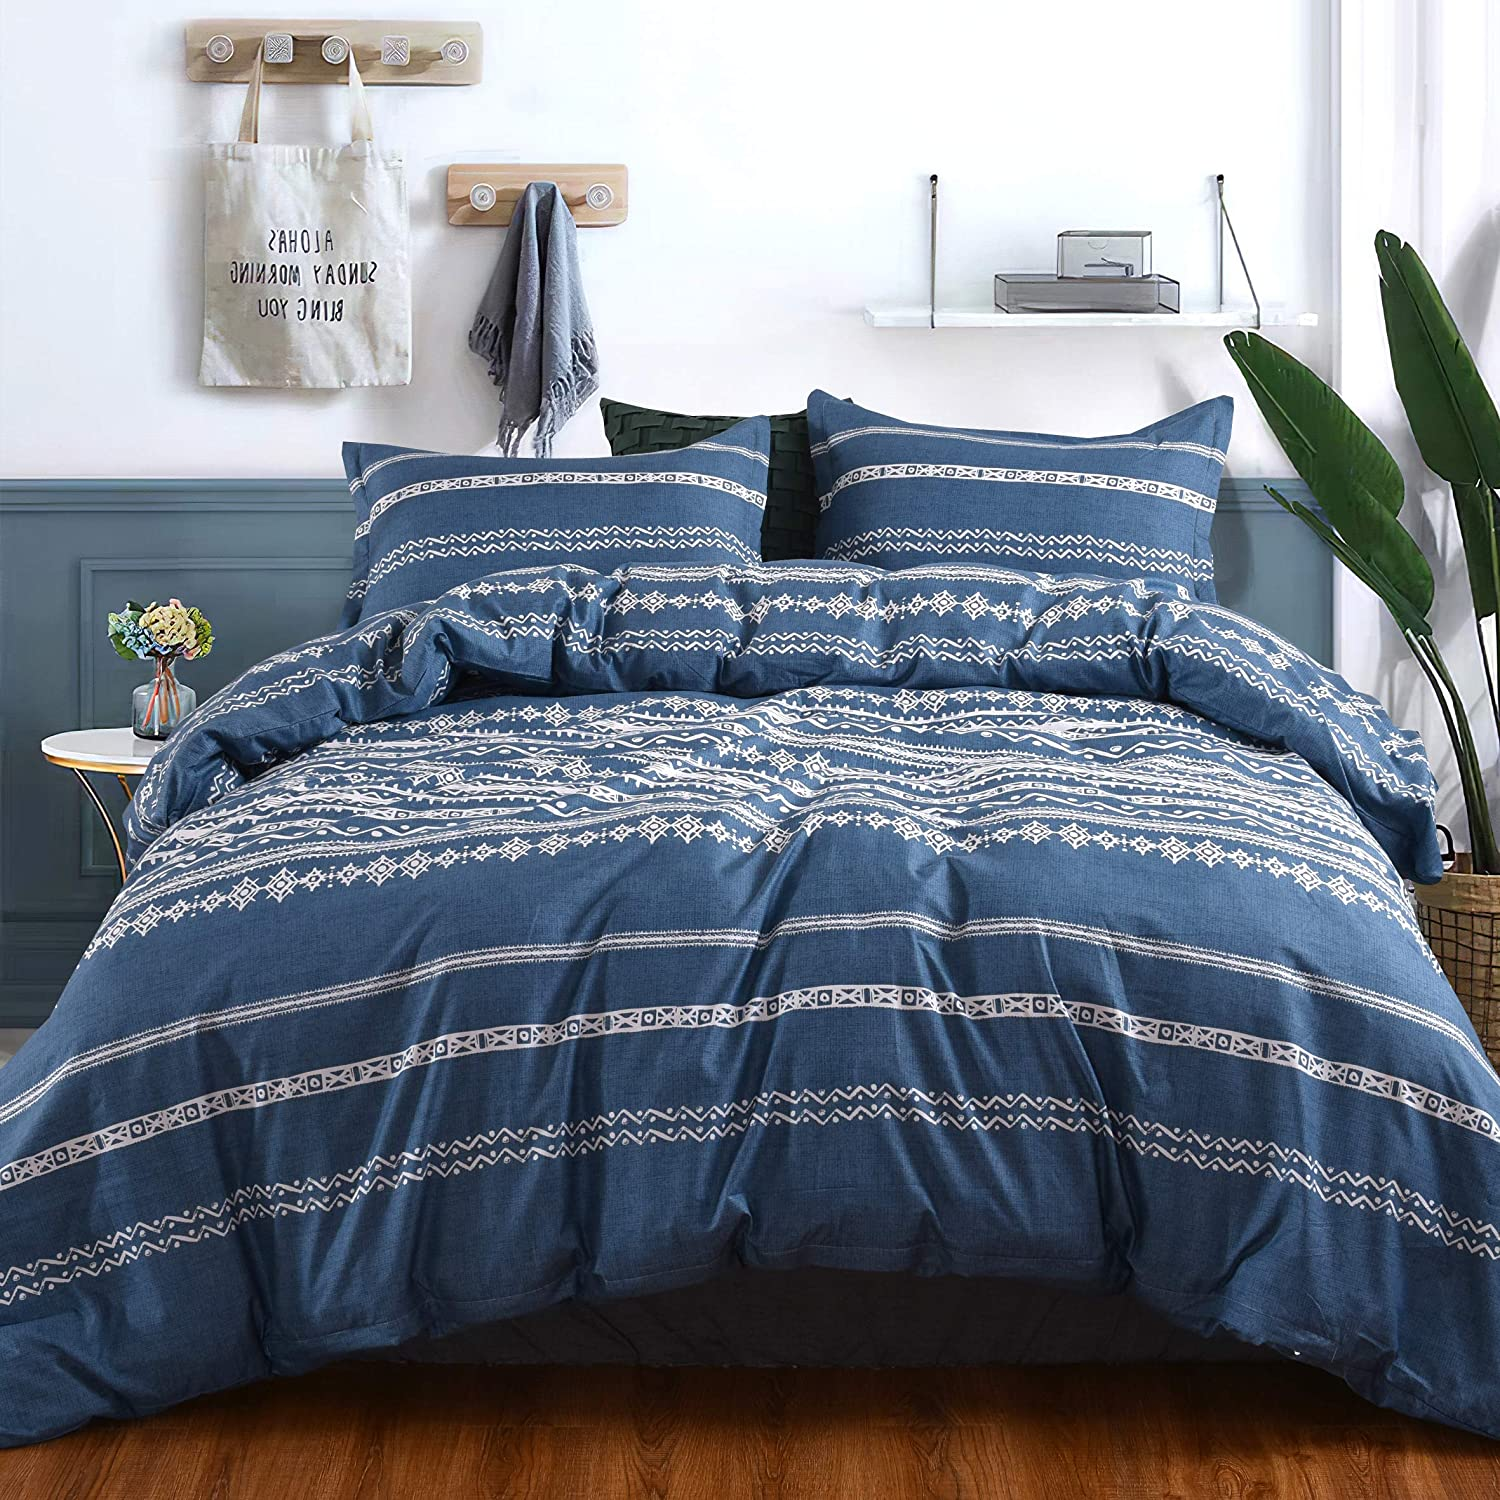 Caurbed Duvet Cover 3 Piece Set Cozy Microfiber Light Modern Striped Bedding Sets Blue Bohemian Pattern Printed Comforter Cover with Zipper Closure(Queen)